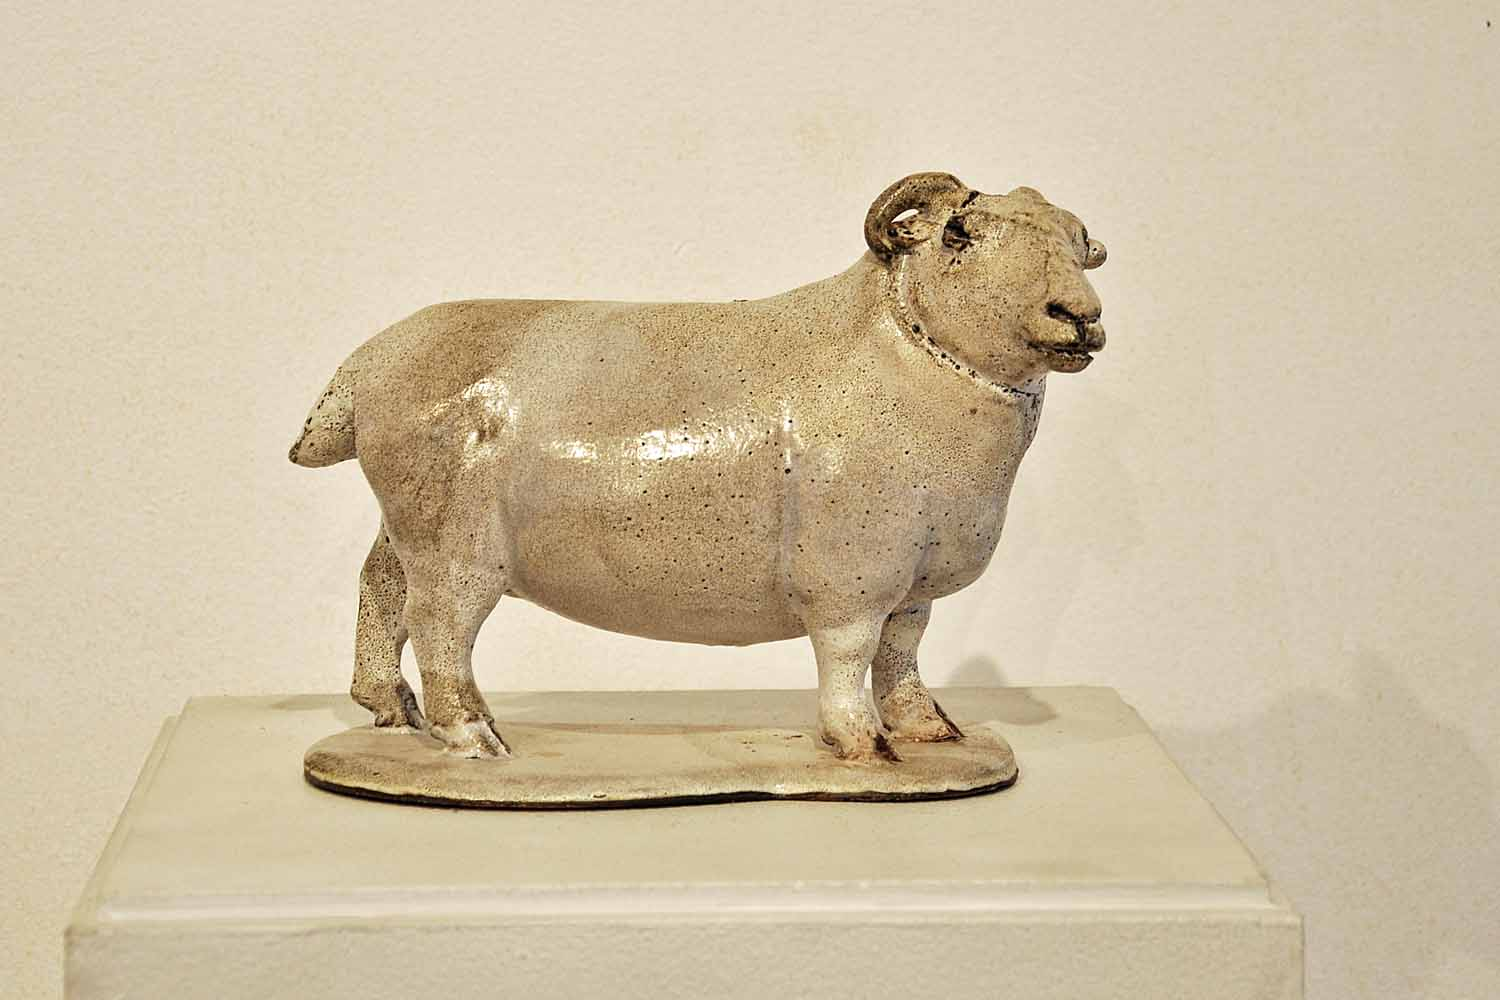 ORNAMENTAL SHEEP IN THE STAFFORDSHIRE STYLE